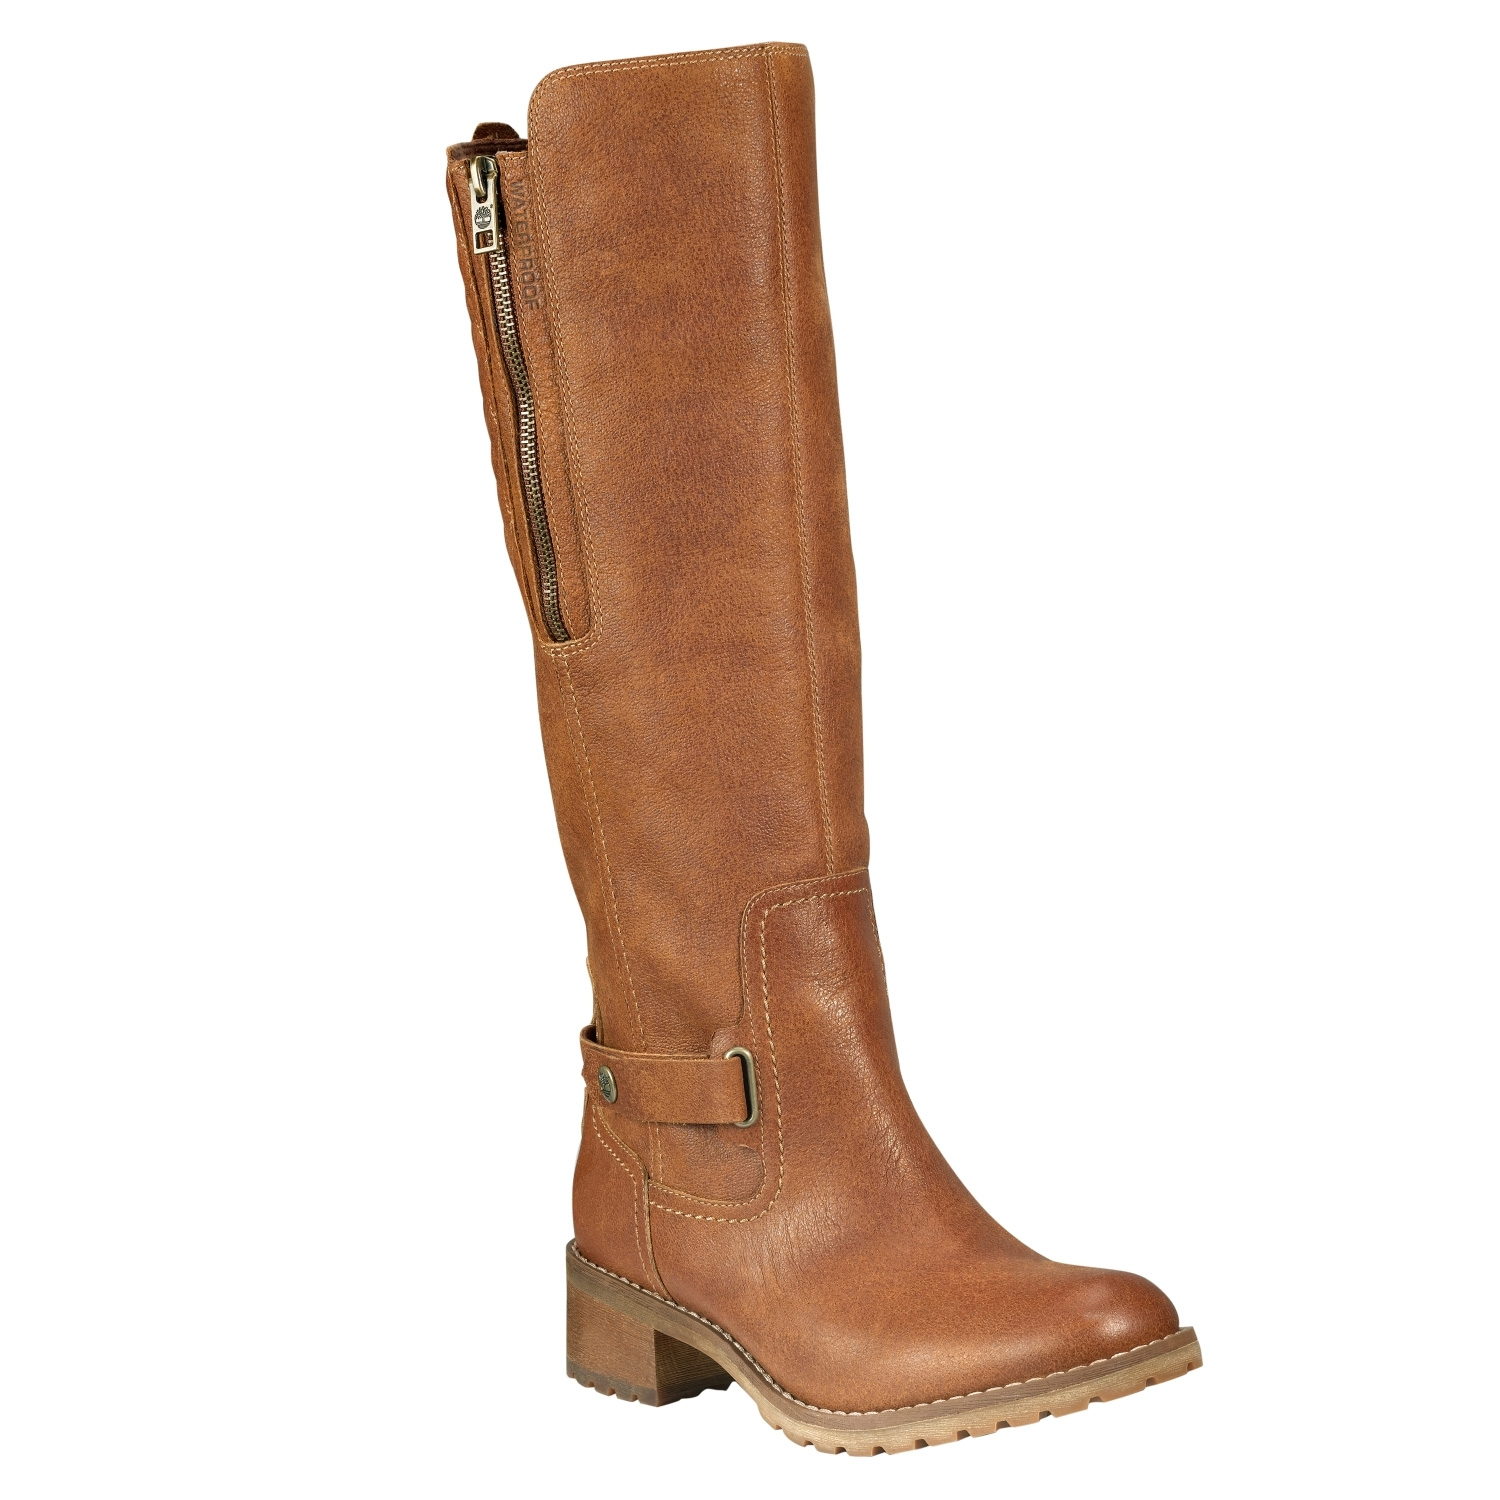 Tall Timberland boots for women 2019